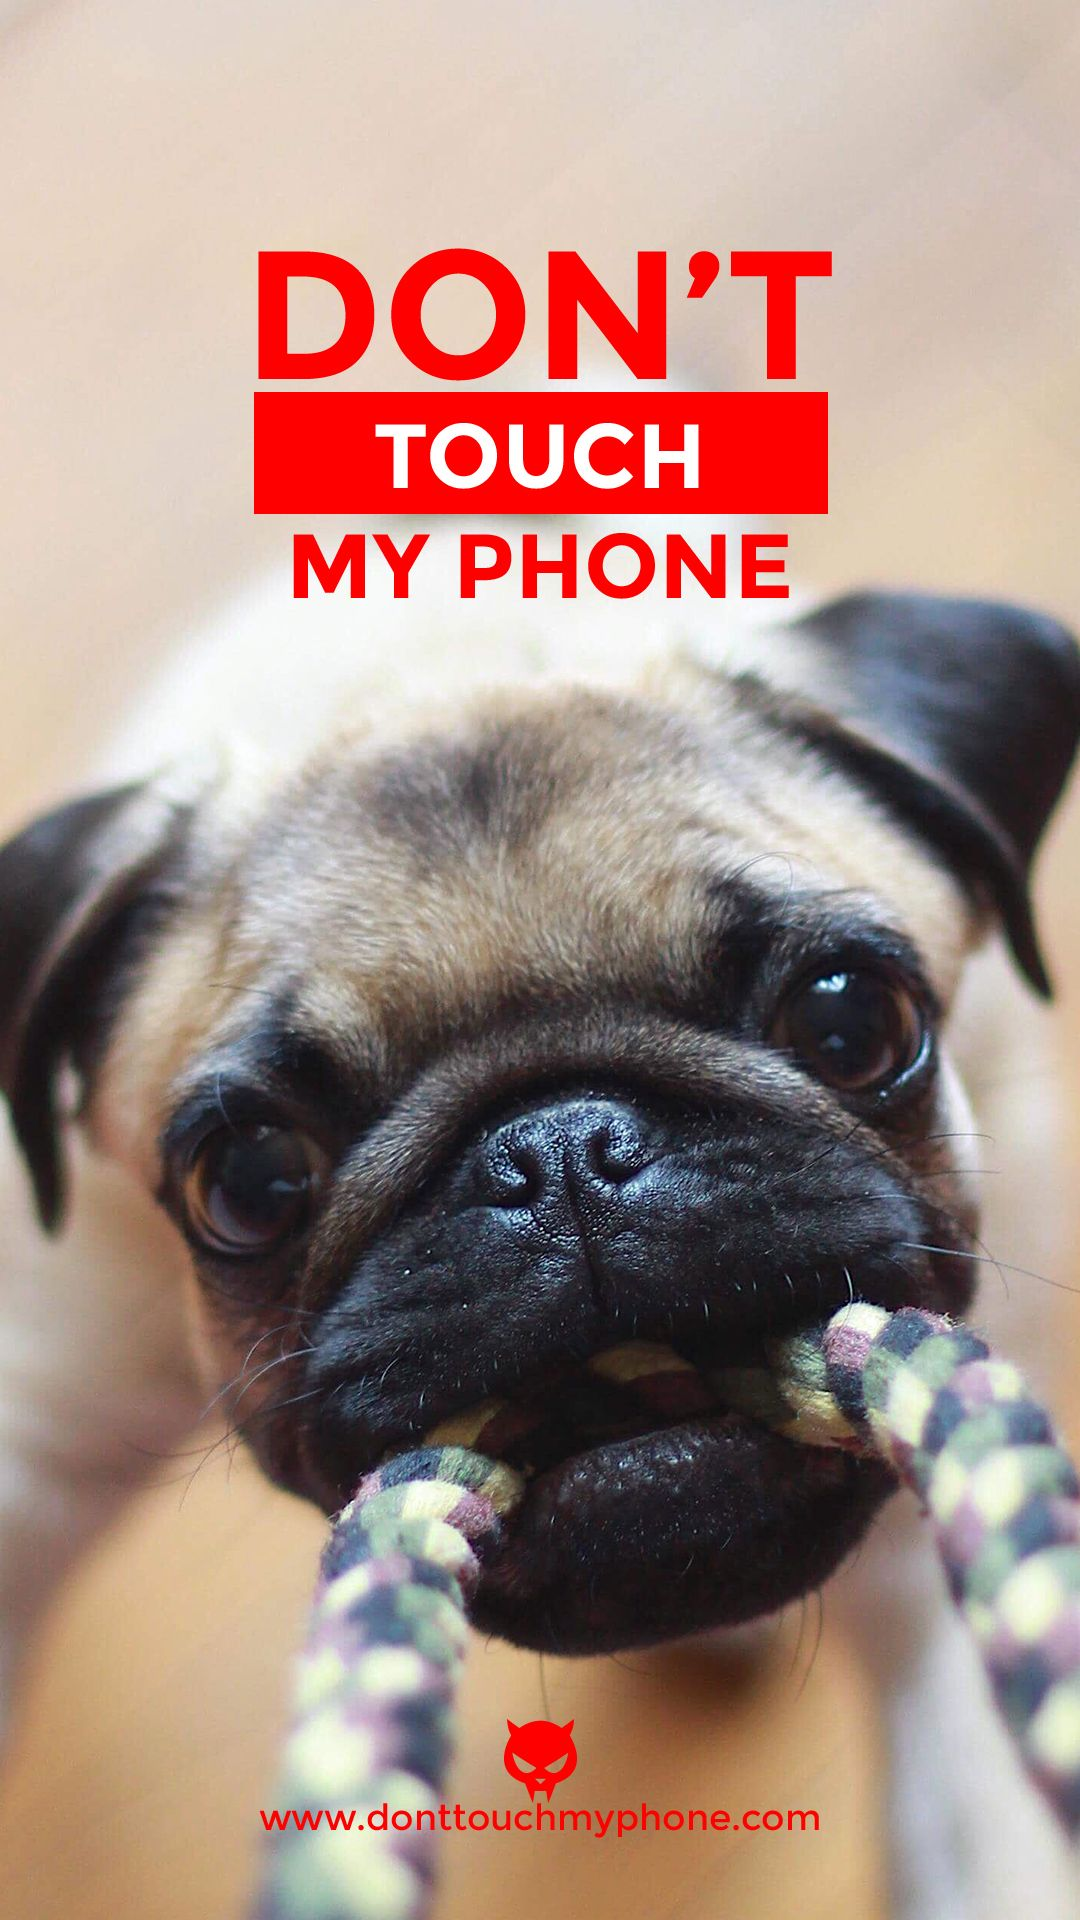 Cute Dog Lock Screen Dont Touch My Phone Wallpapers Cute Mobile Wallpapers Cute Emoji Wallpaper